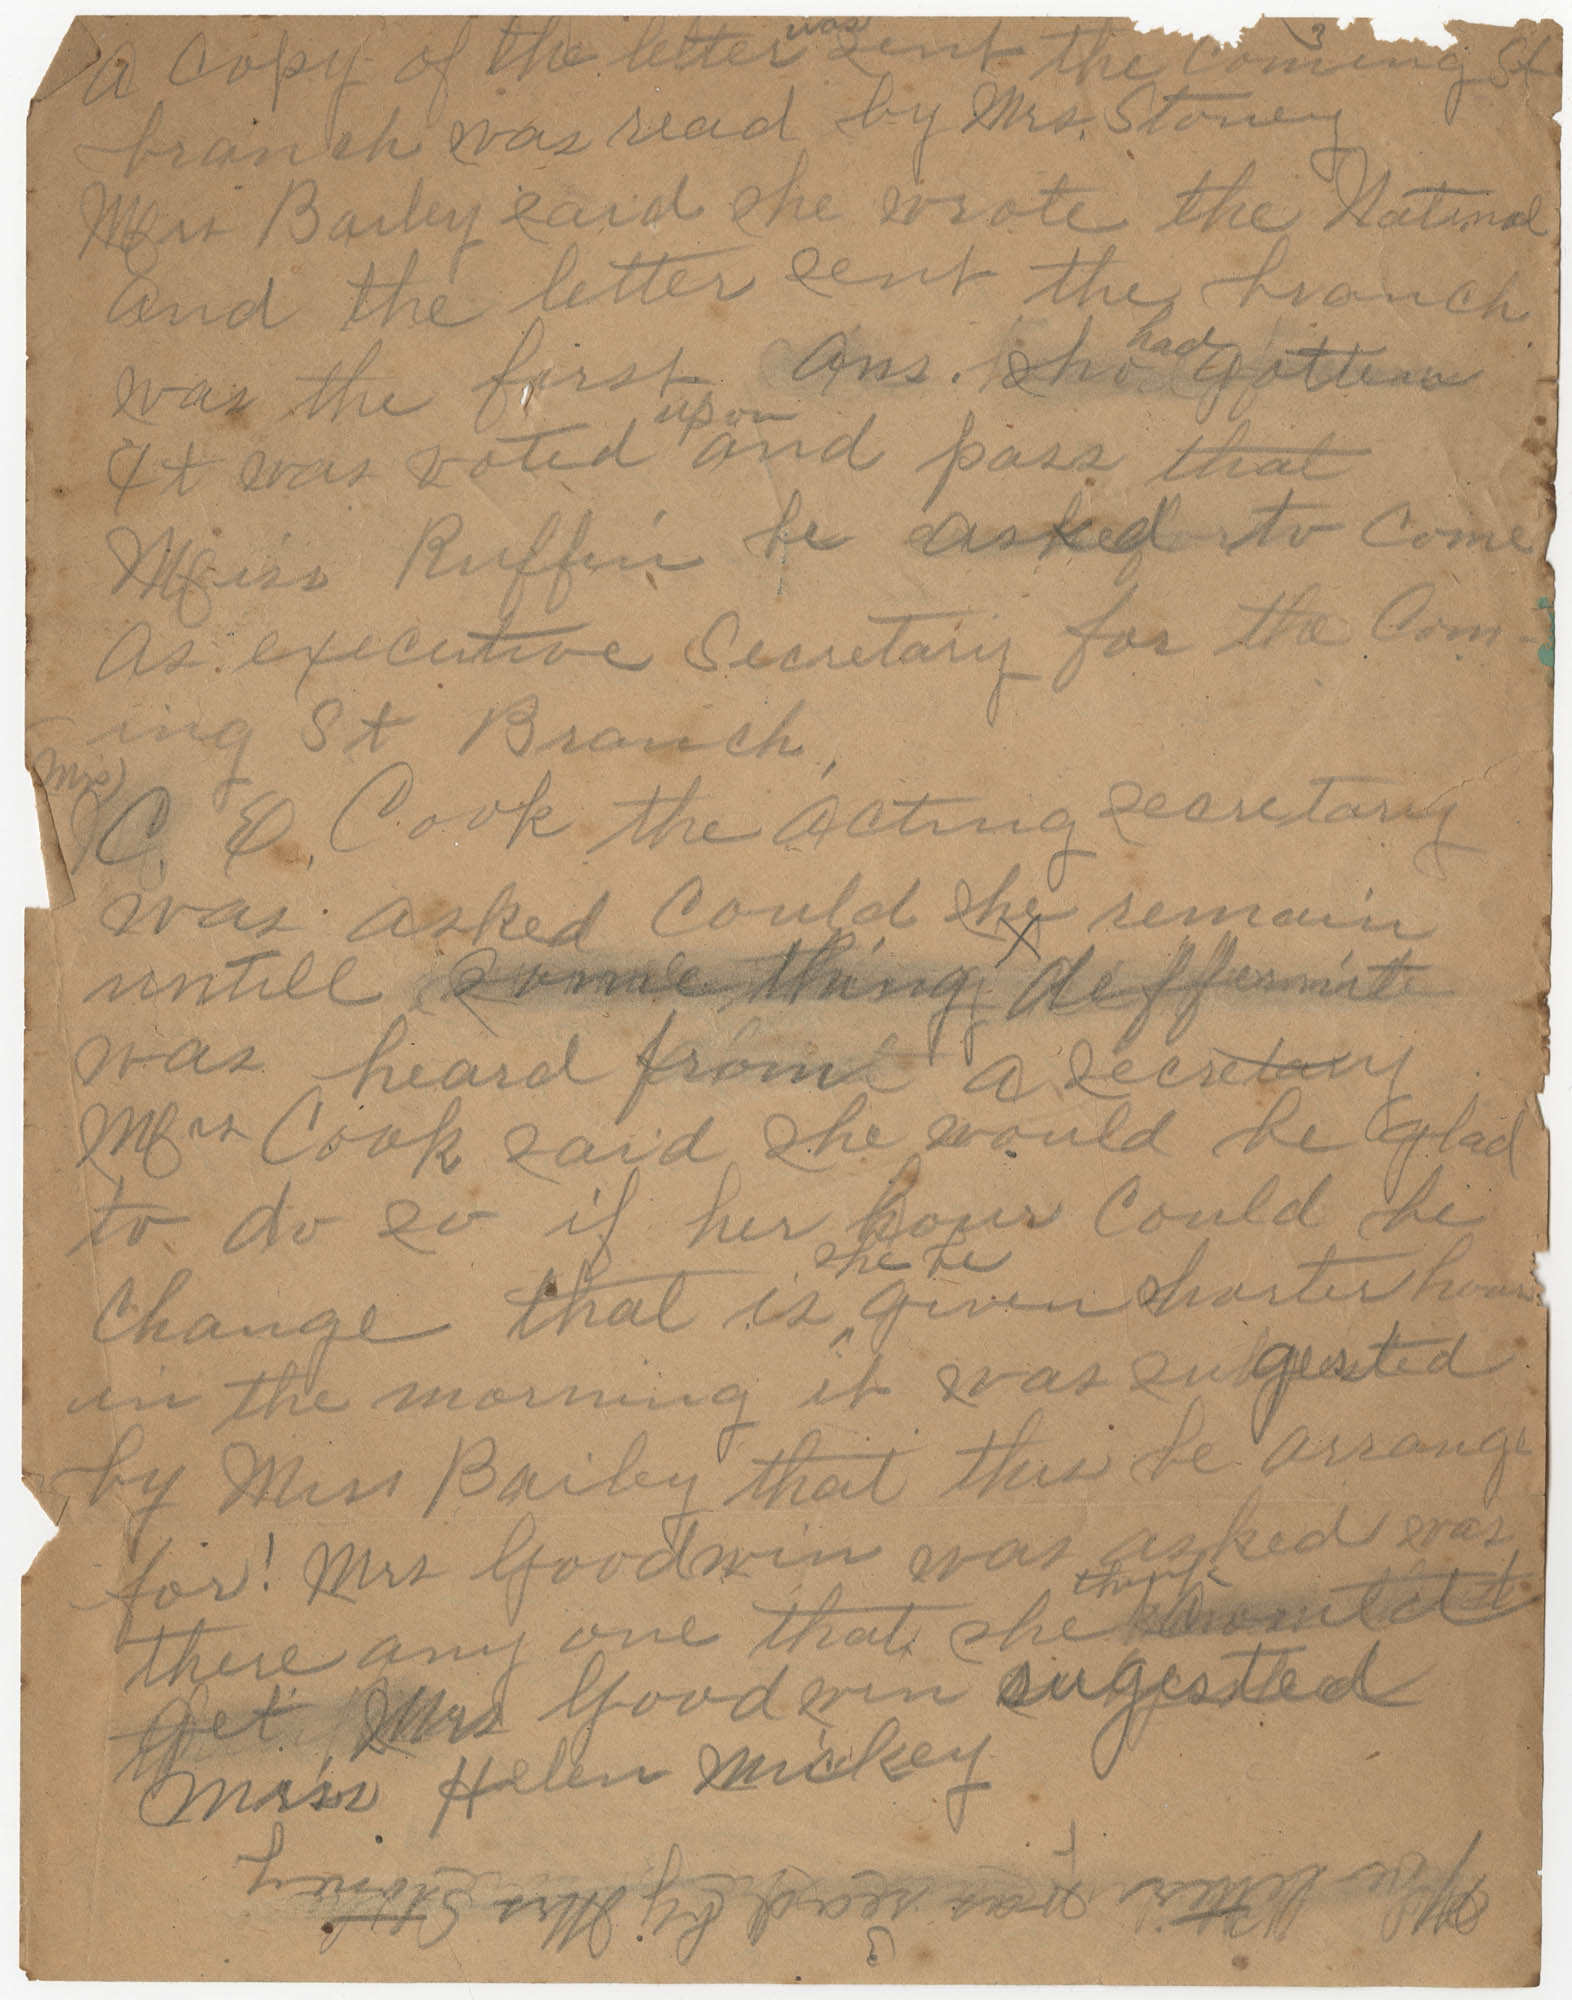 Minutes, Coming Street Y.W.C.A., 1925